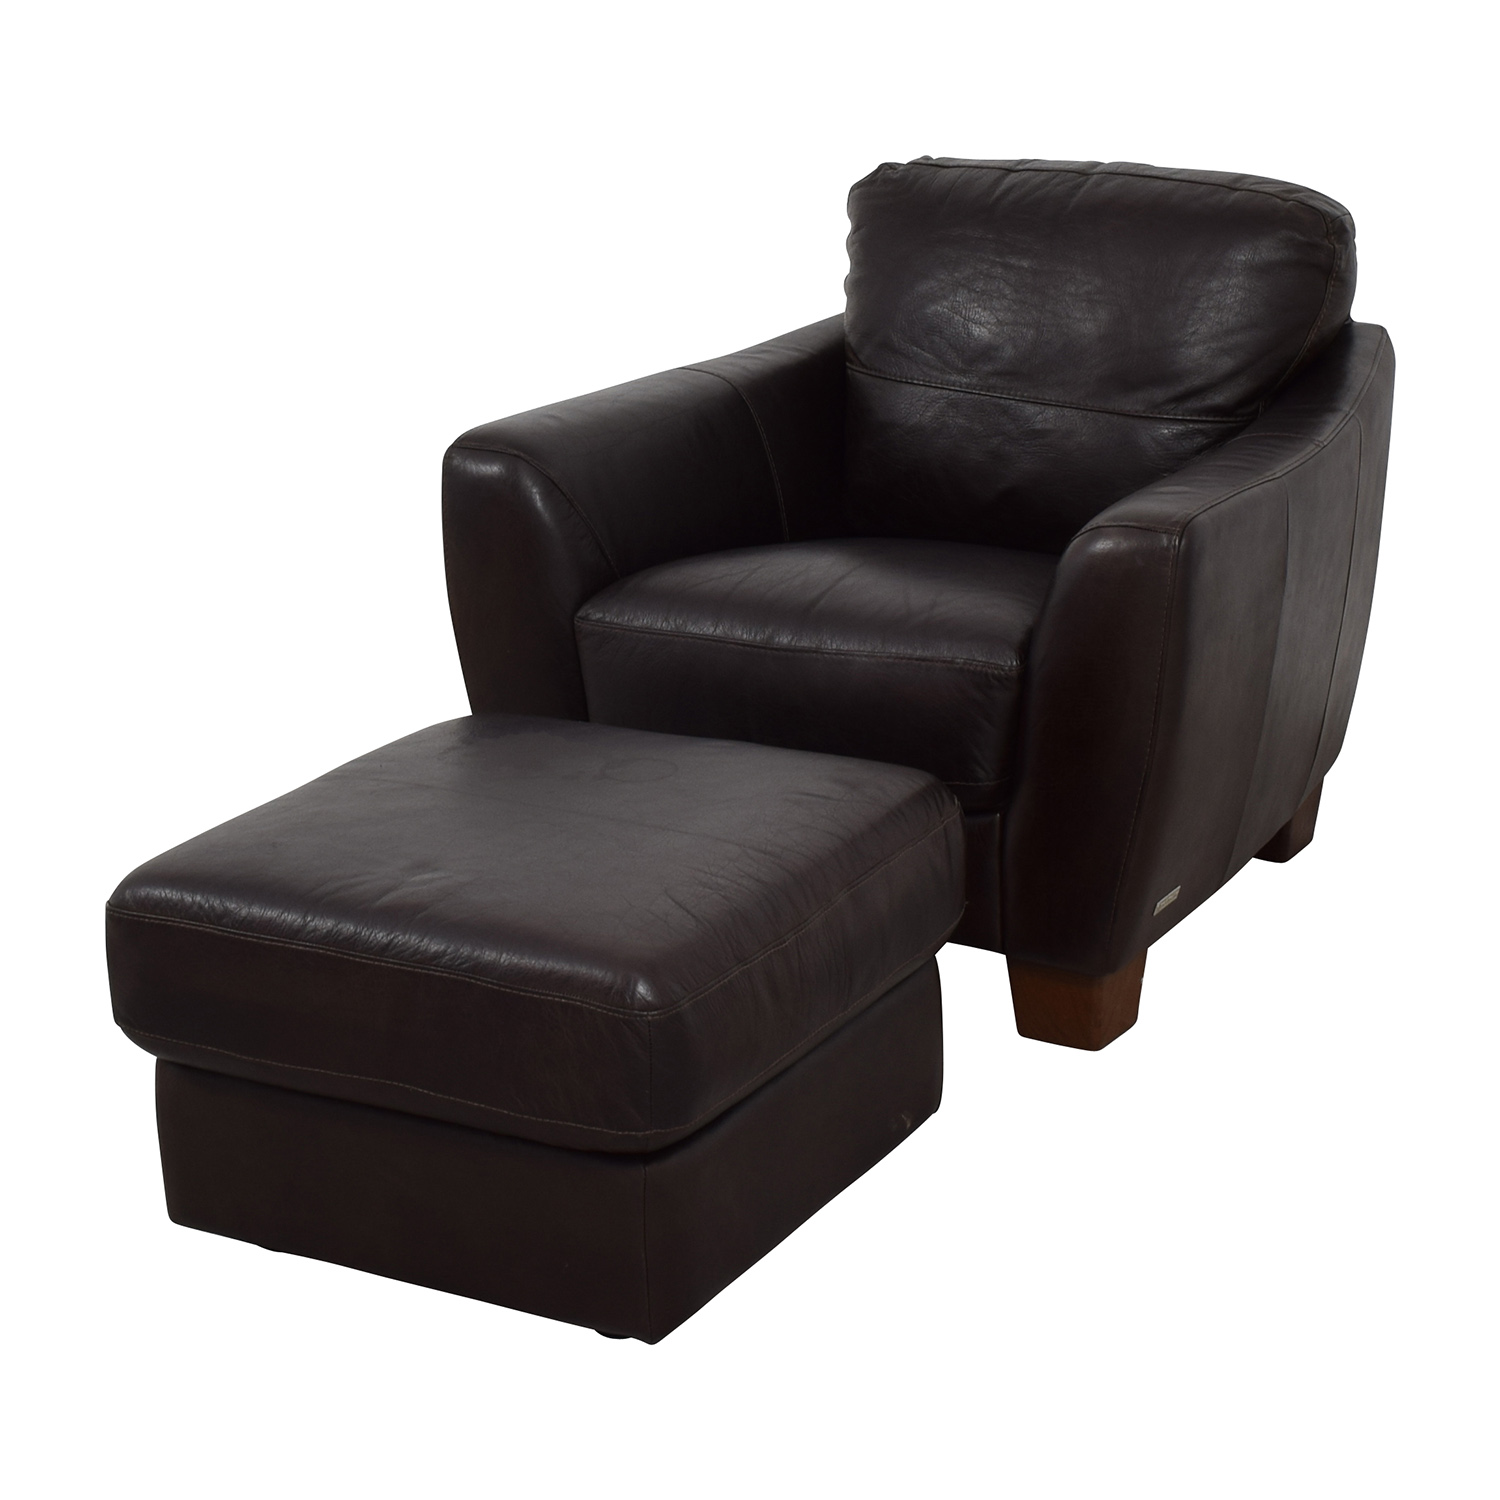 Sofitalia Dark Brown Leather Armchair And Ottoman Chairs